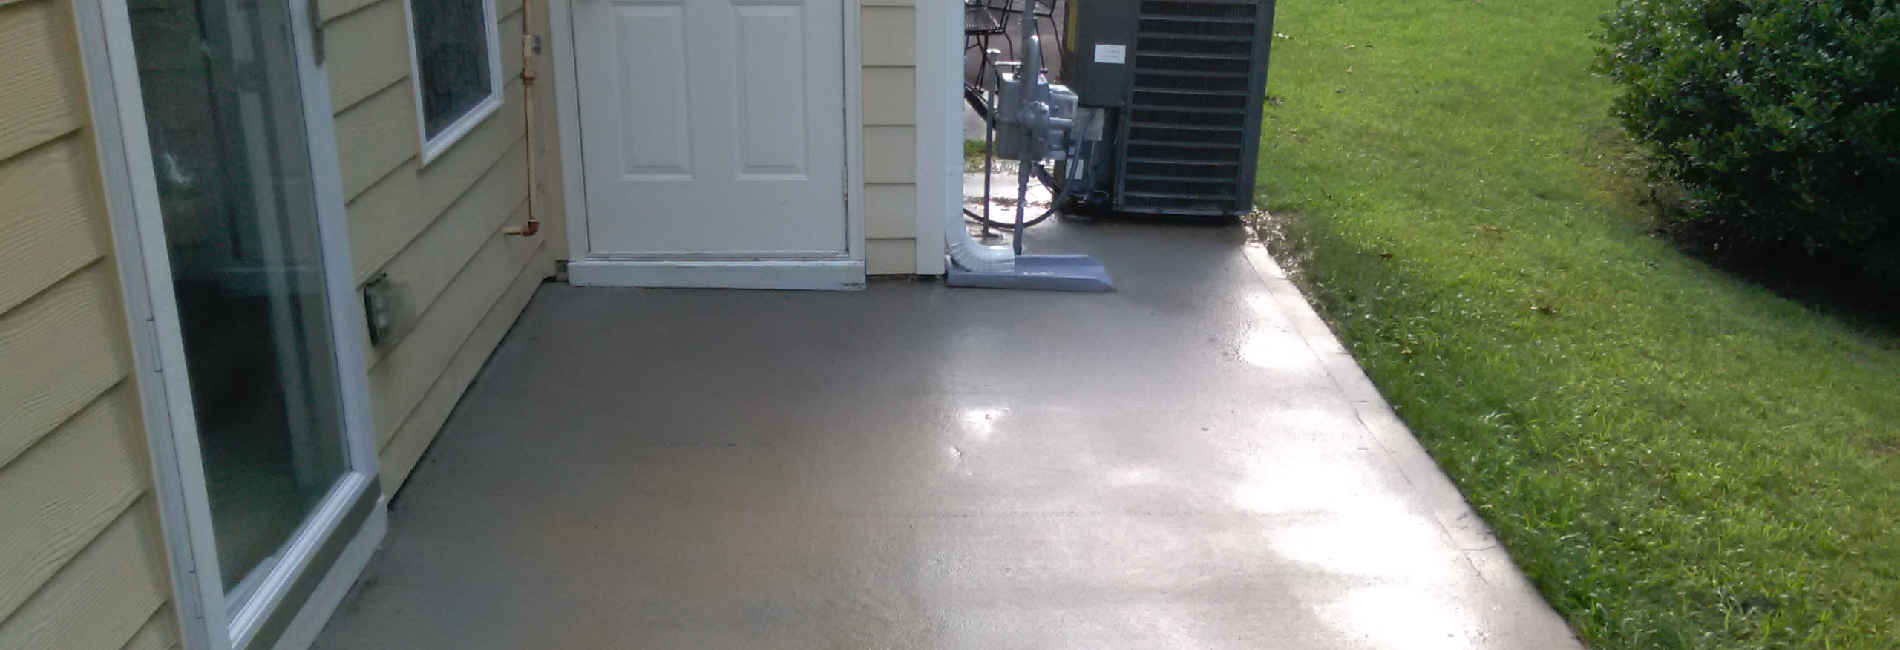 A clean patio after professional power washing